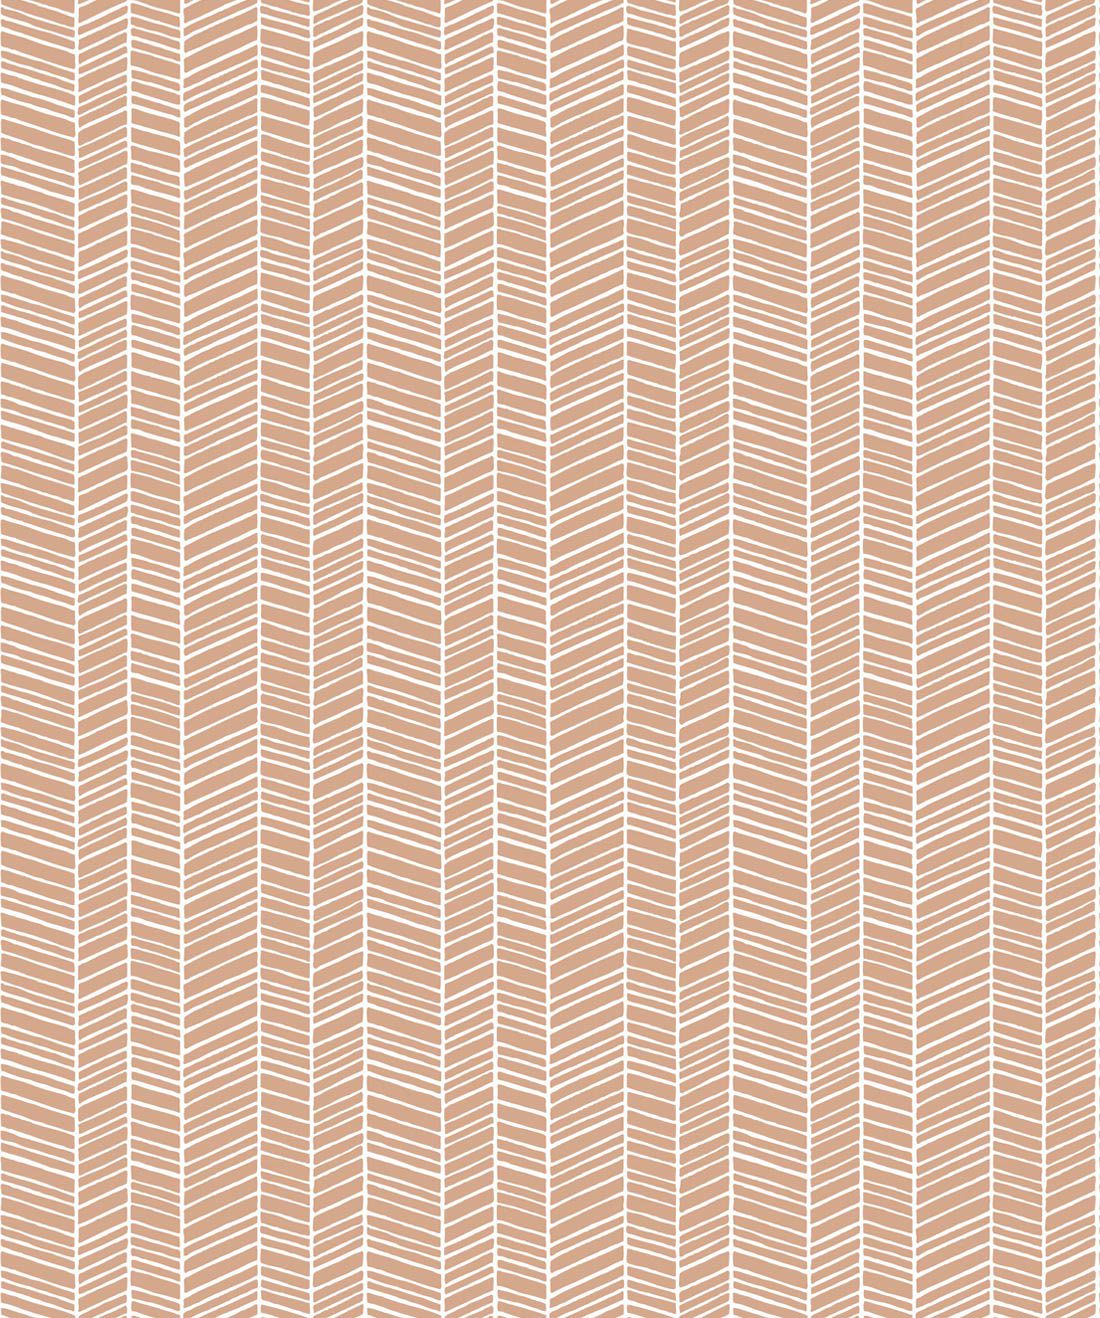 Herringbone Desert Wallpaper